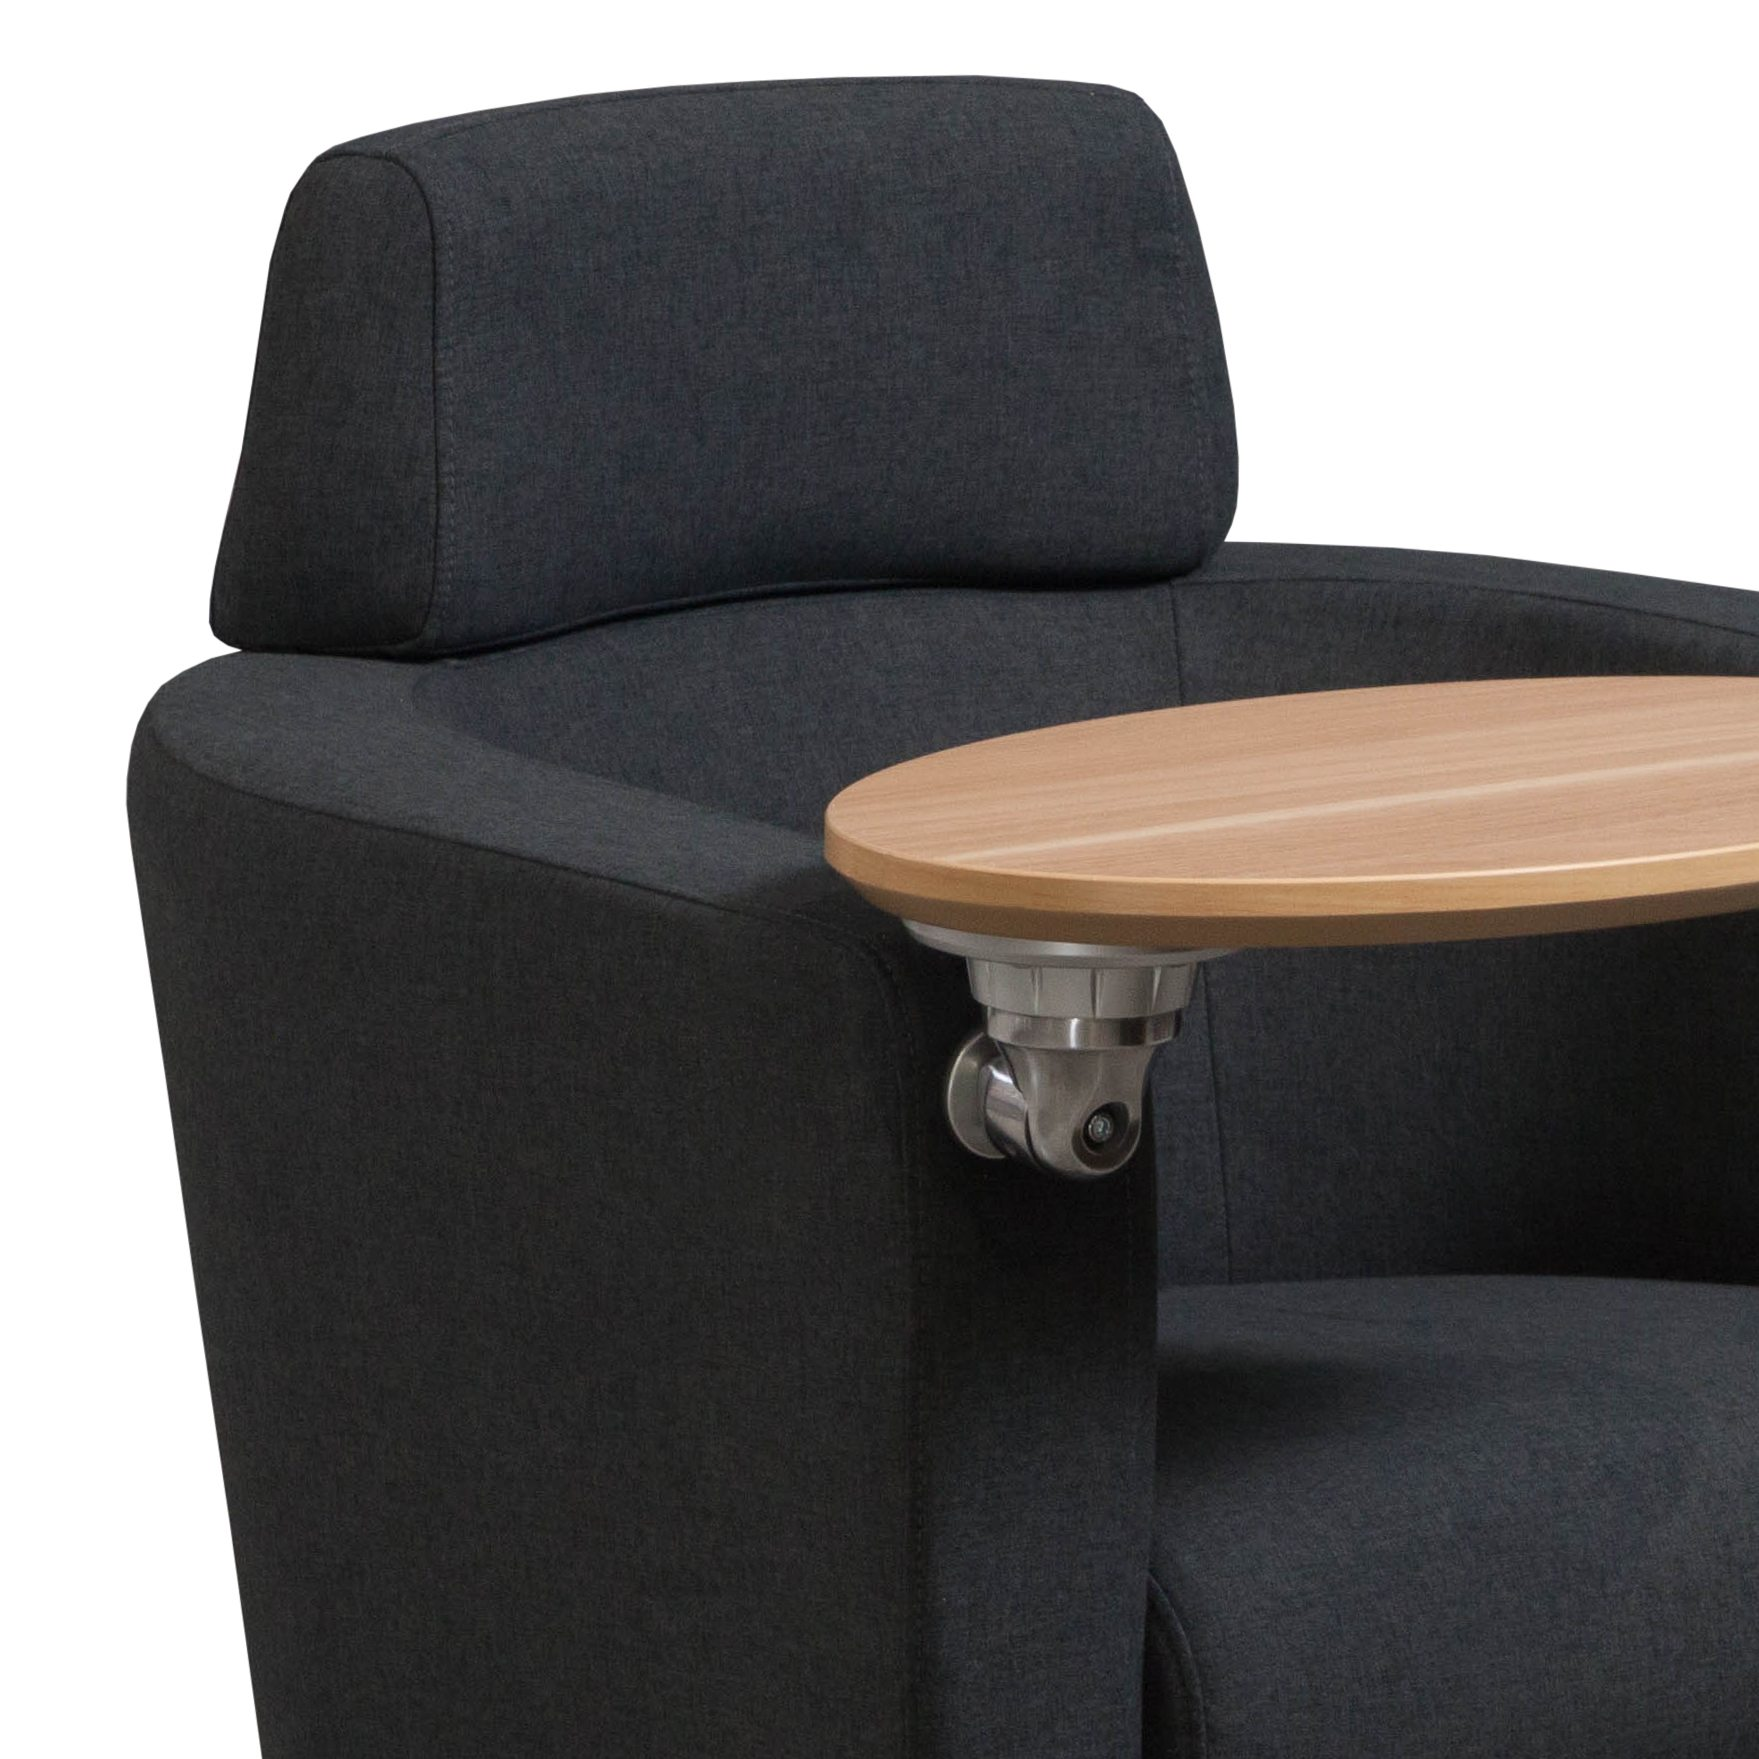 GoSIT Lounge Chair In Charcoal   Arm